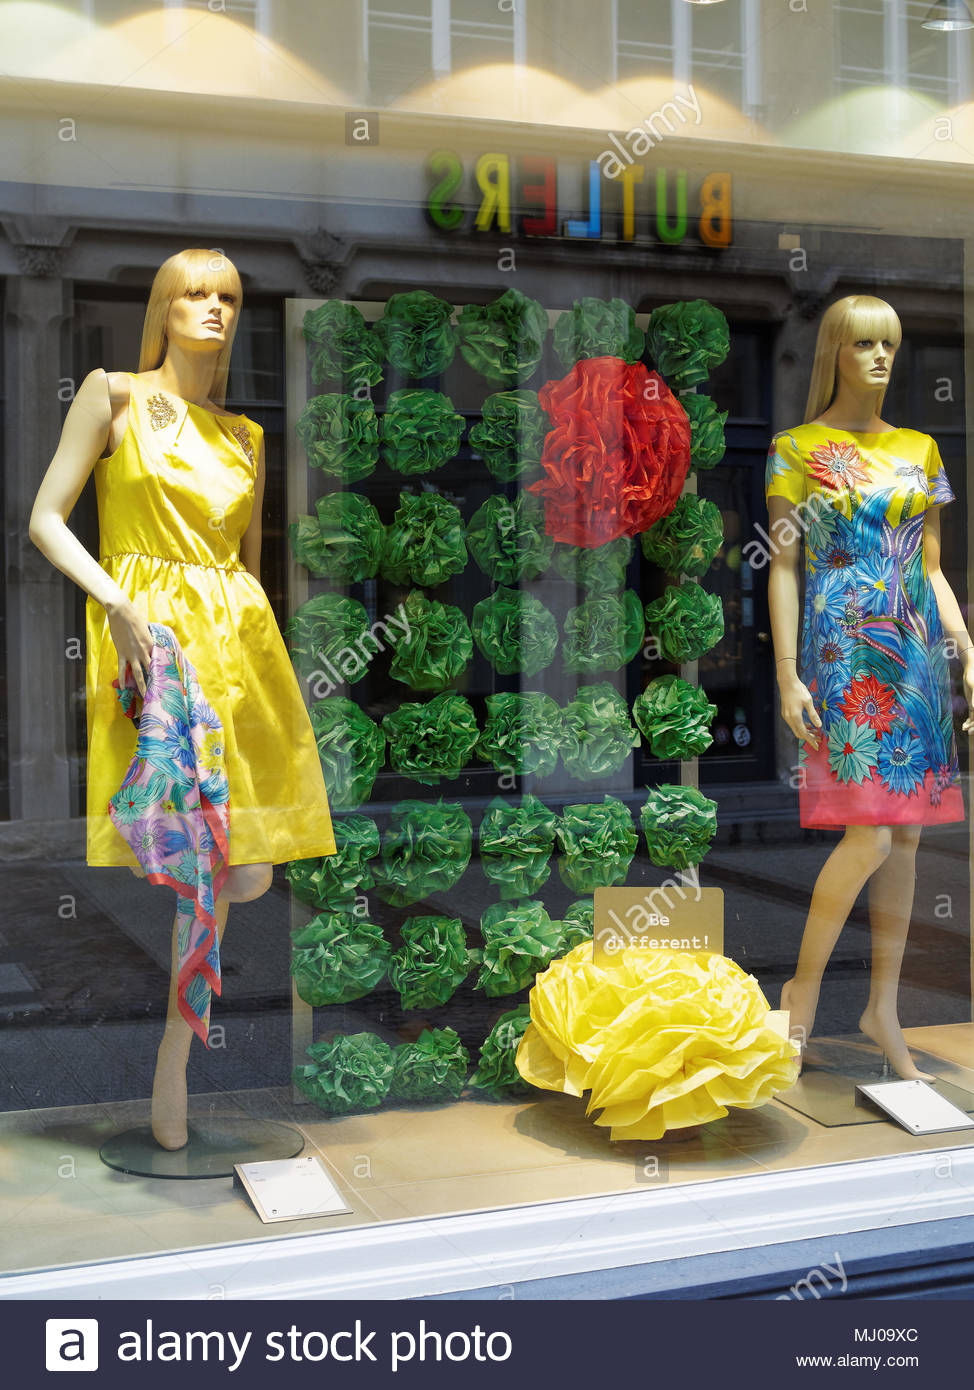 Window shopping in Luxembourg City - Stock Image